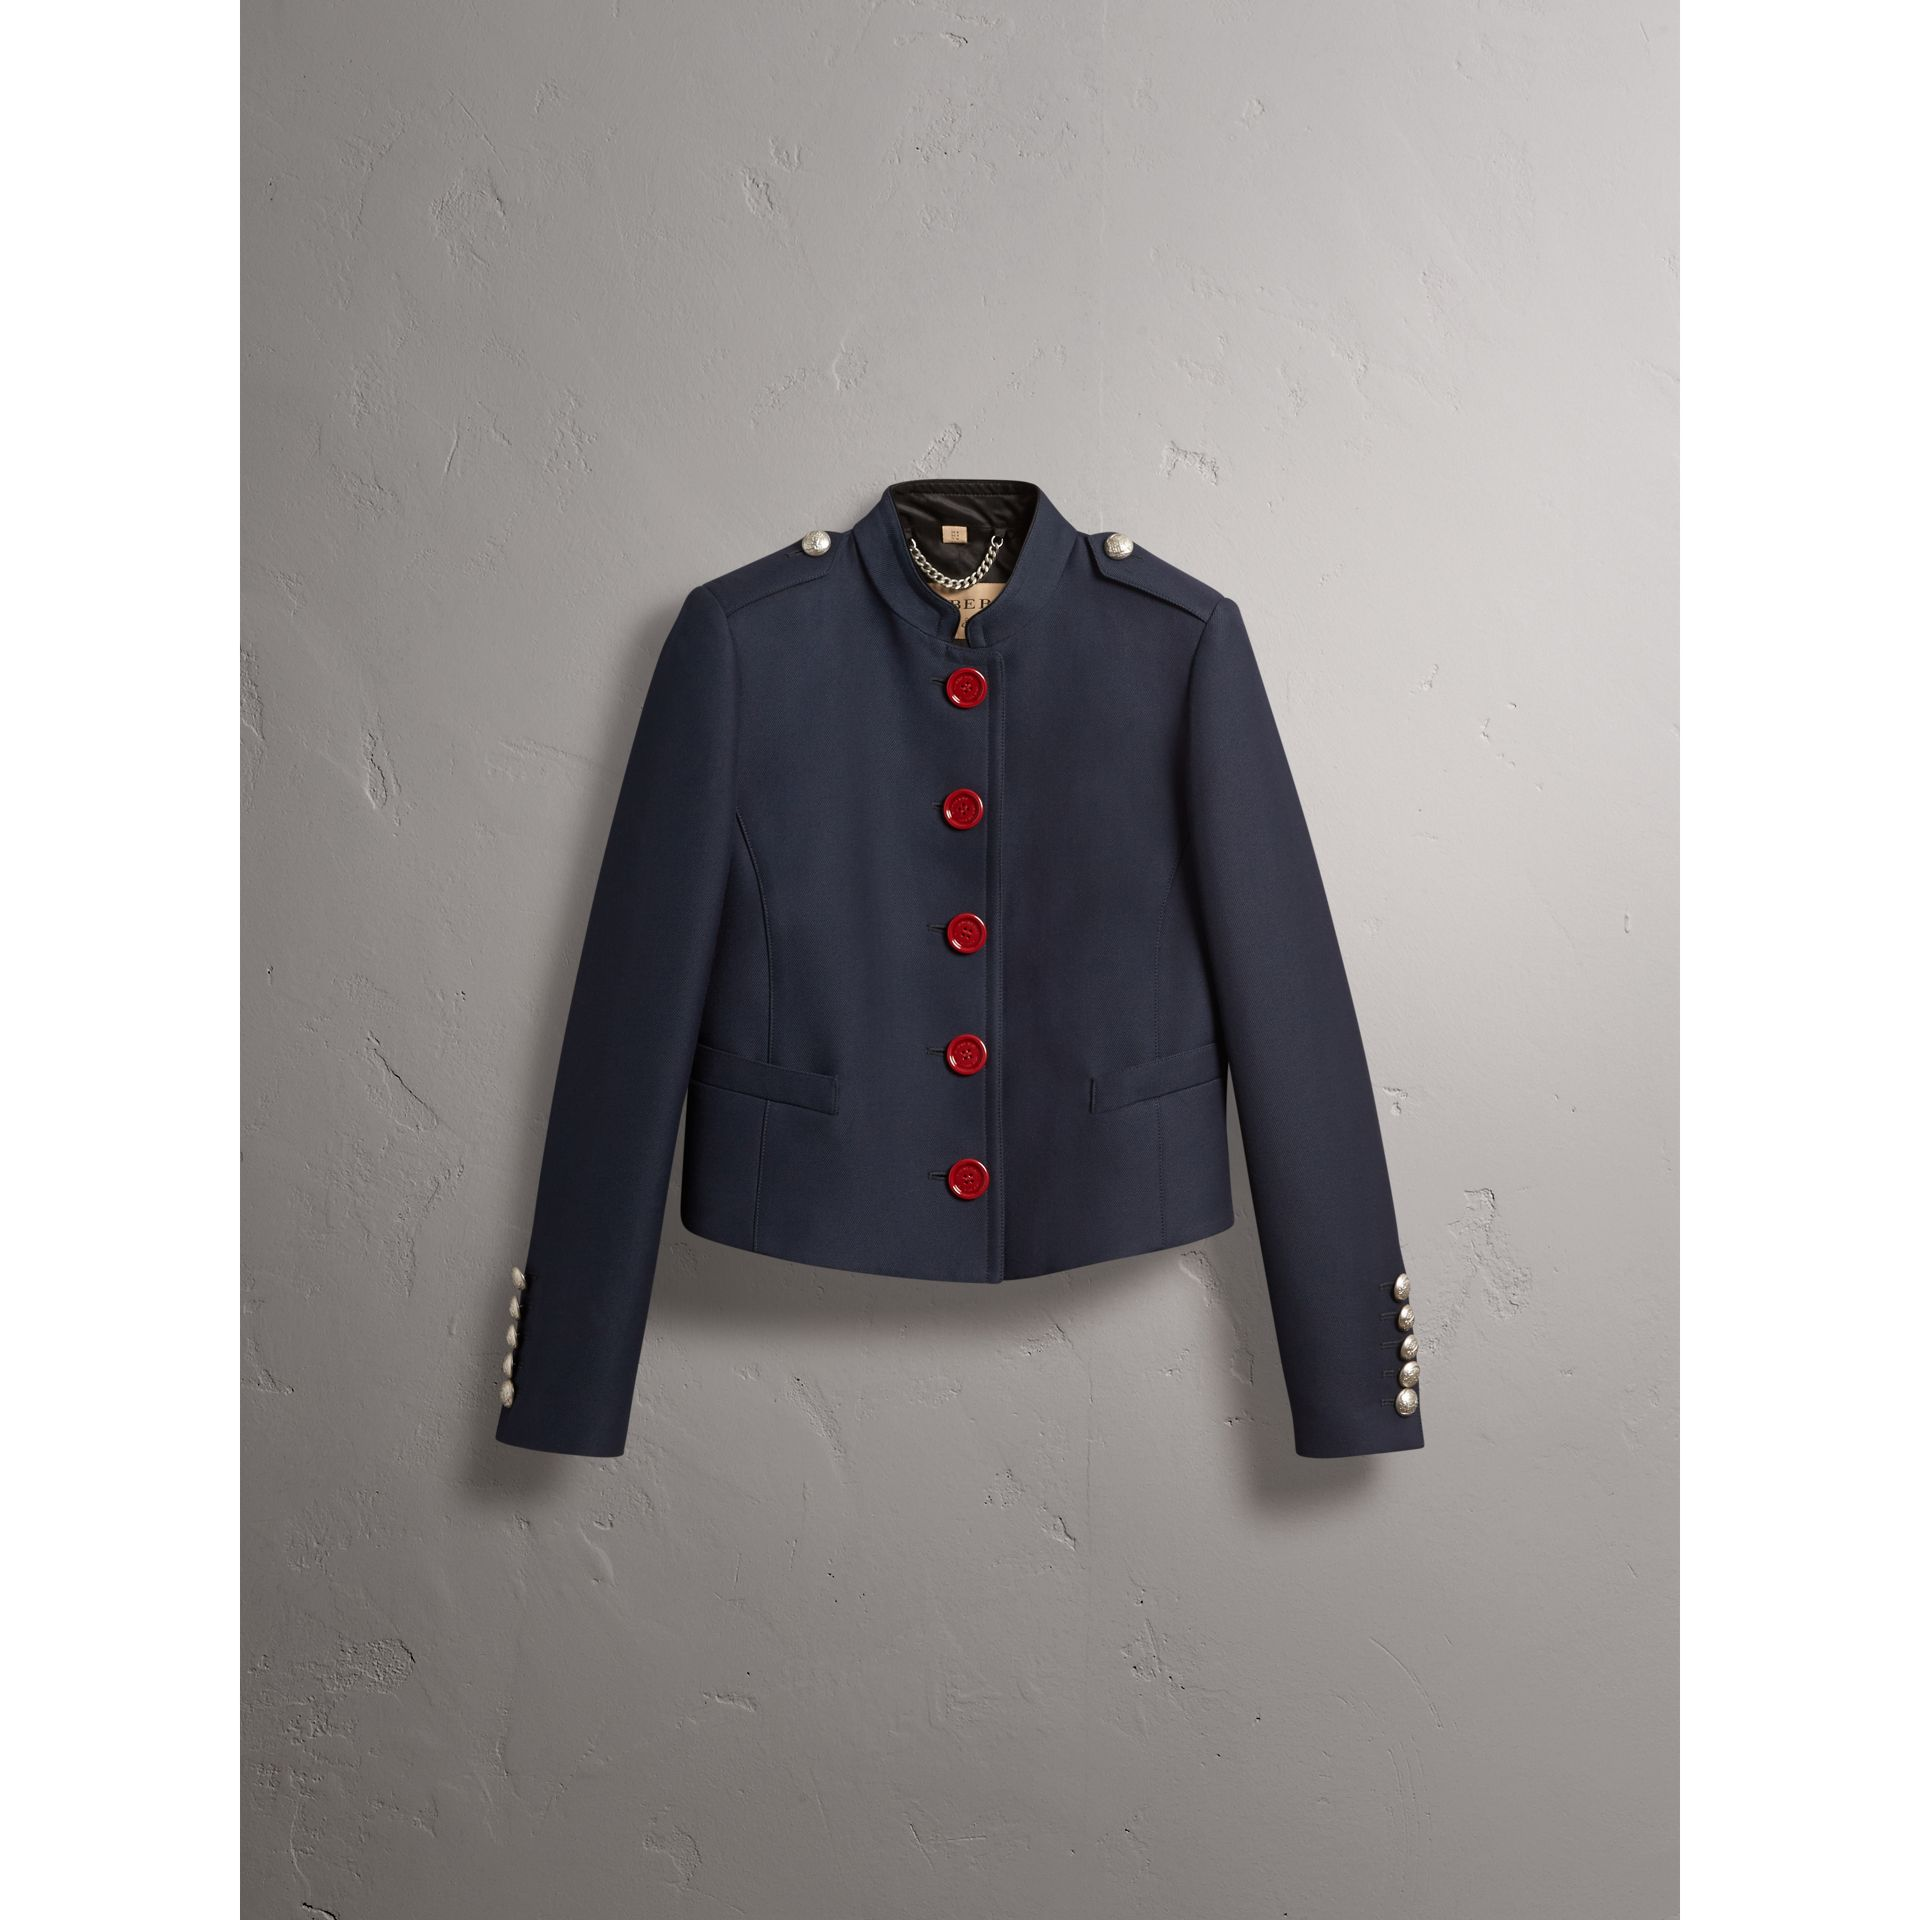 Resin Button Wool Cotton Blend Jacket in Ink Blue - Women | Burberry United Kingdom - gallery image 3